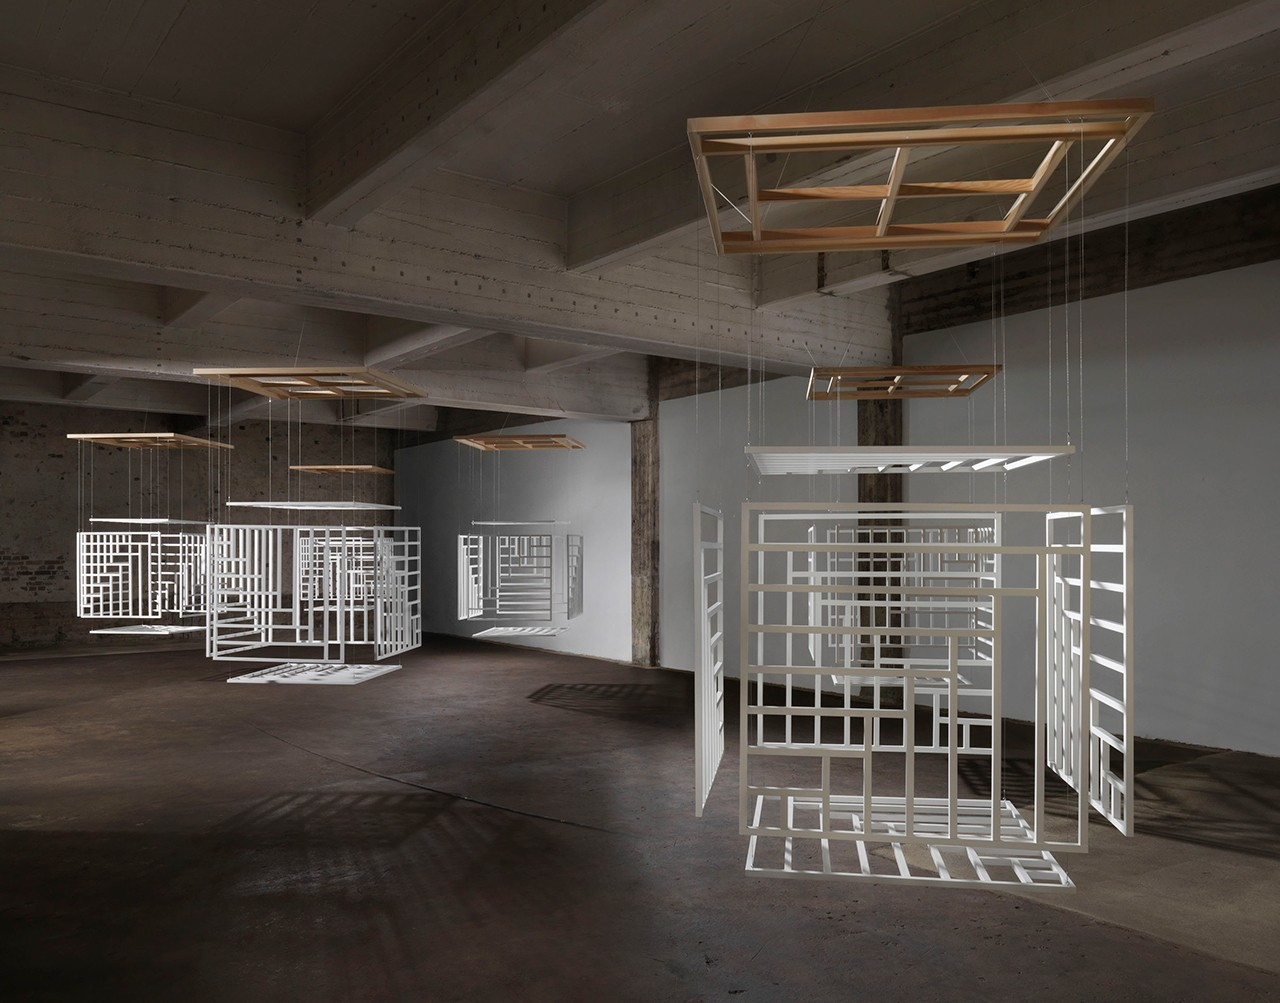 Title of Installation: Webbing Material: 6 cubes (beech wood), paint, wire, suspended on frames (fir) from the ceiling Dimensions: 140 x 140 cm; Hight in relation to space Exhibition: In situ: A Sequence of Works Berlin Tegel June 1 – 30, 2016